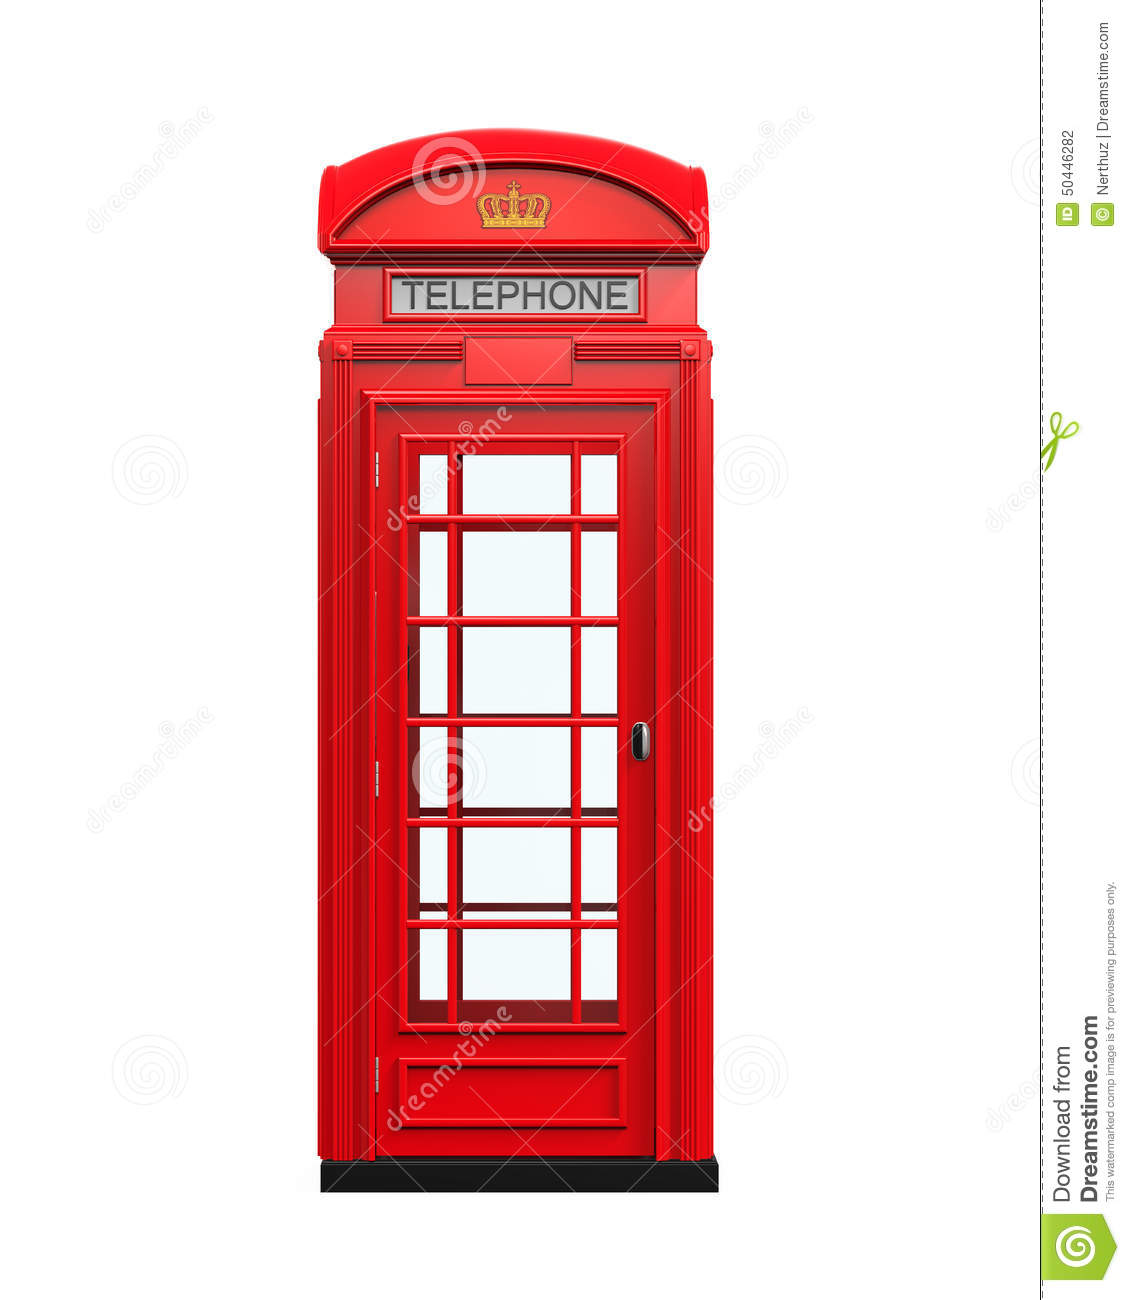 how to open telephone box on house